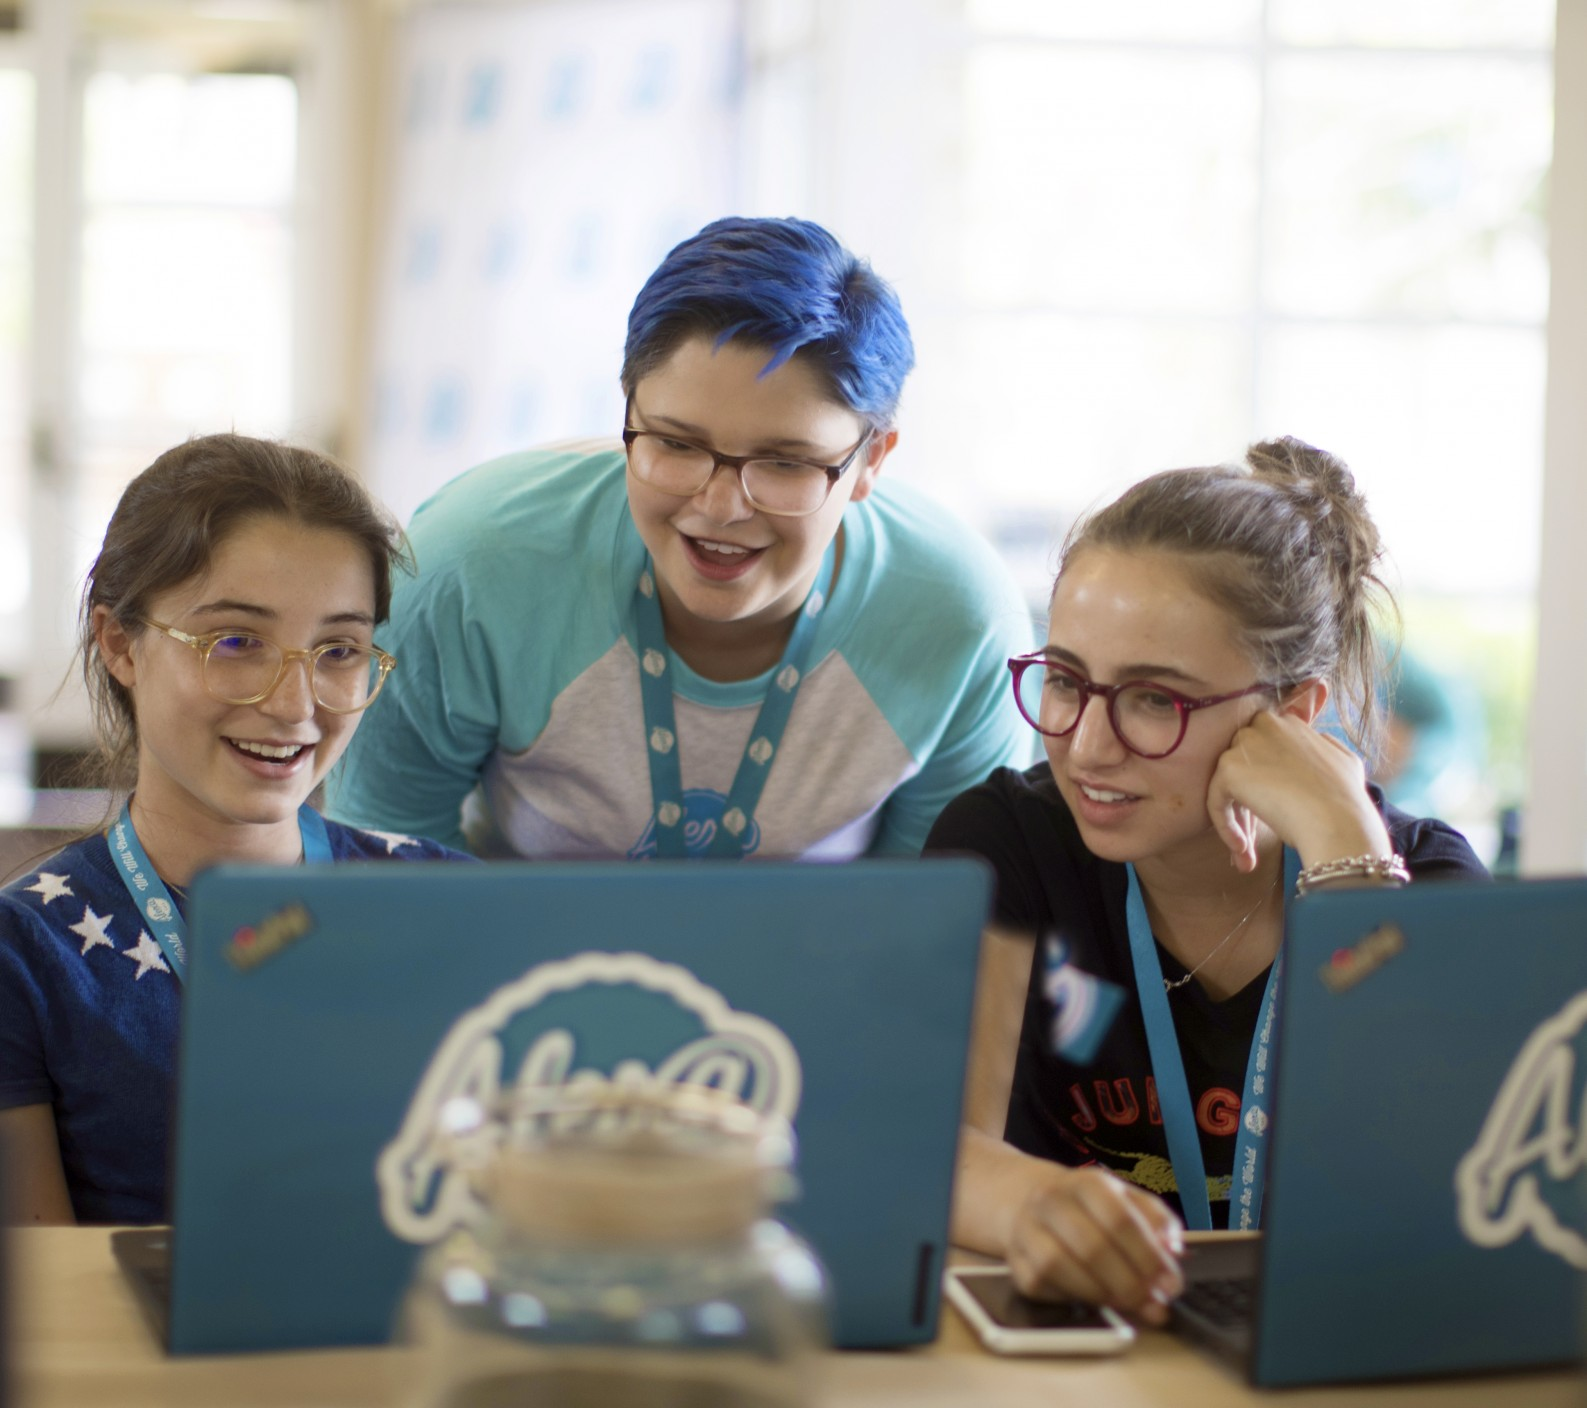 Summer Program - Technology | Alexa Cafe: All-Girls STEM Camp | Held at University of Denver